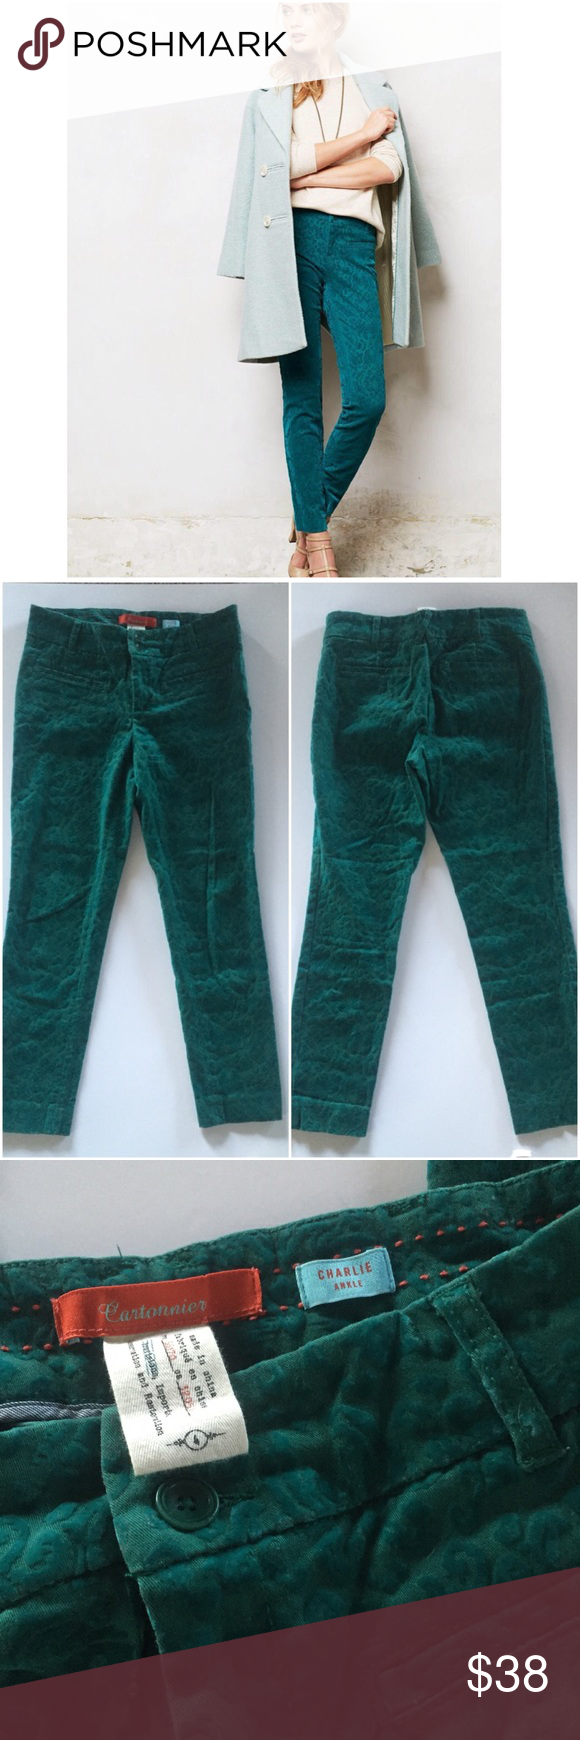 Anthropologie flocked Charlie ankle pants Super fun pants in green velvety brocade print. Great condition! Skinny fit. Measurements coming soon! By Cartonnier. Anthropologie Pants Ankle & Cropped